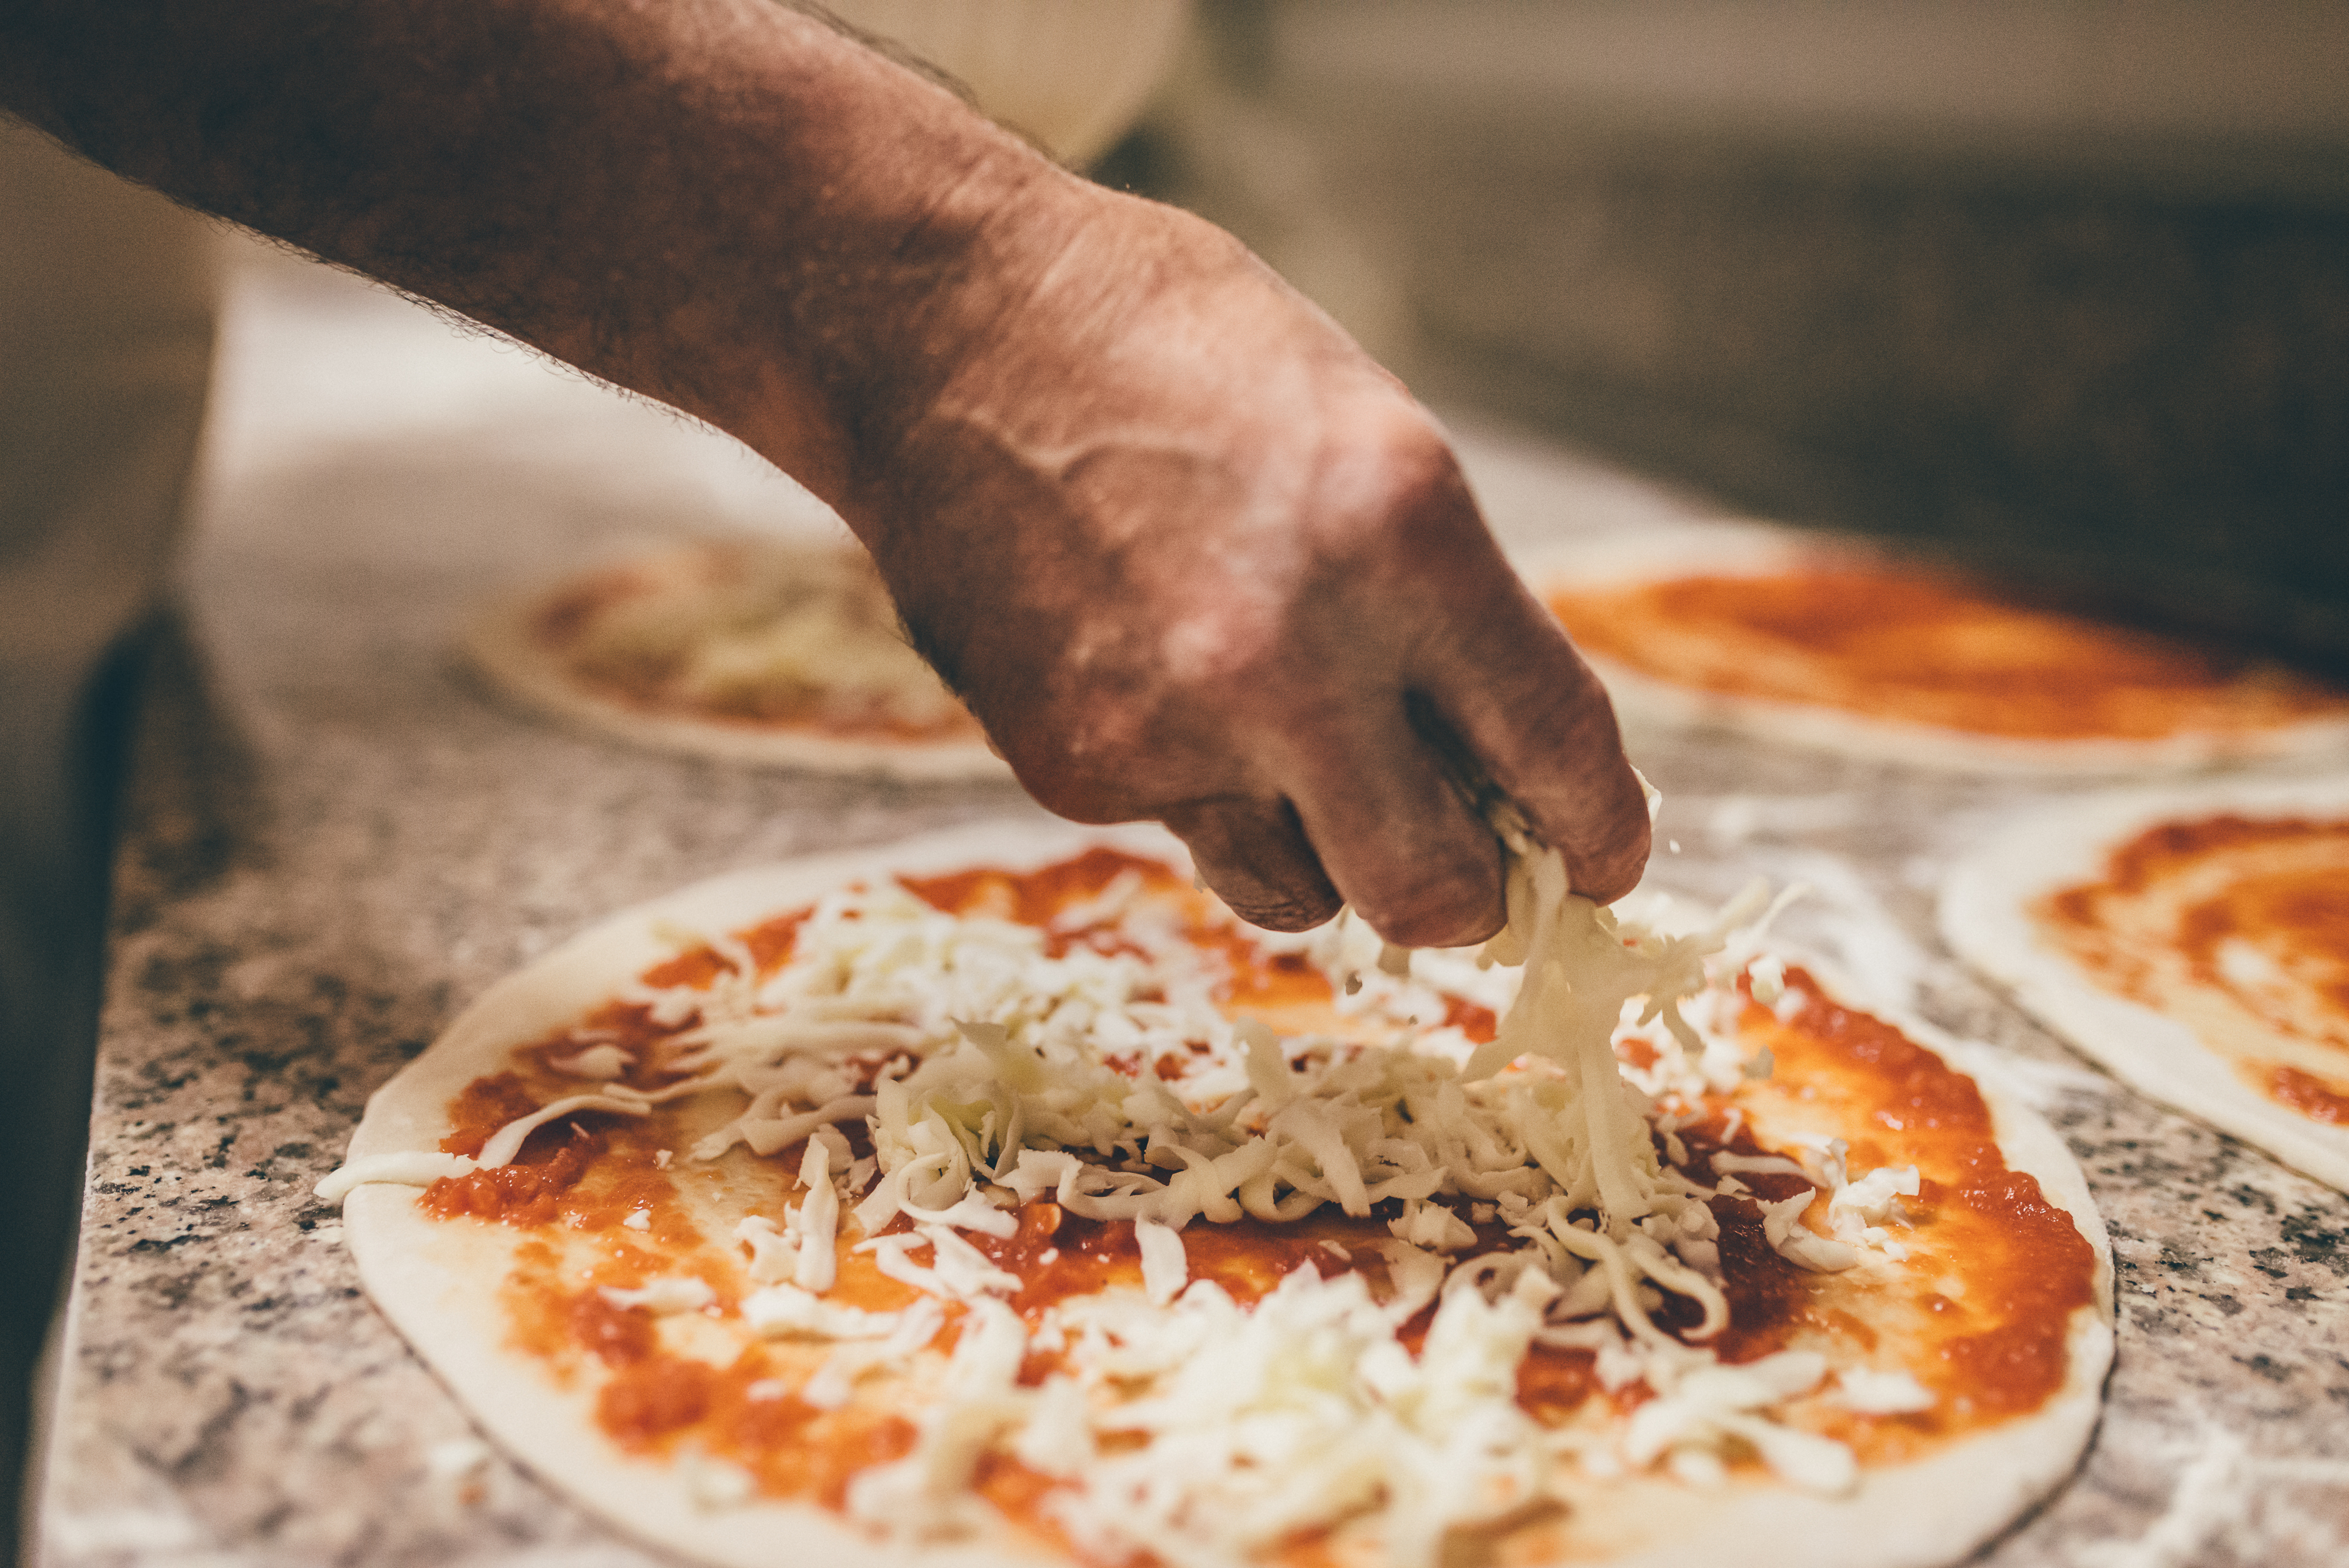 Pizza Makers How To Make Pizza At Home With Affordable Kitchen Gadgets Spy